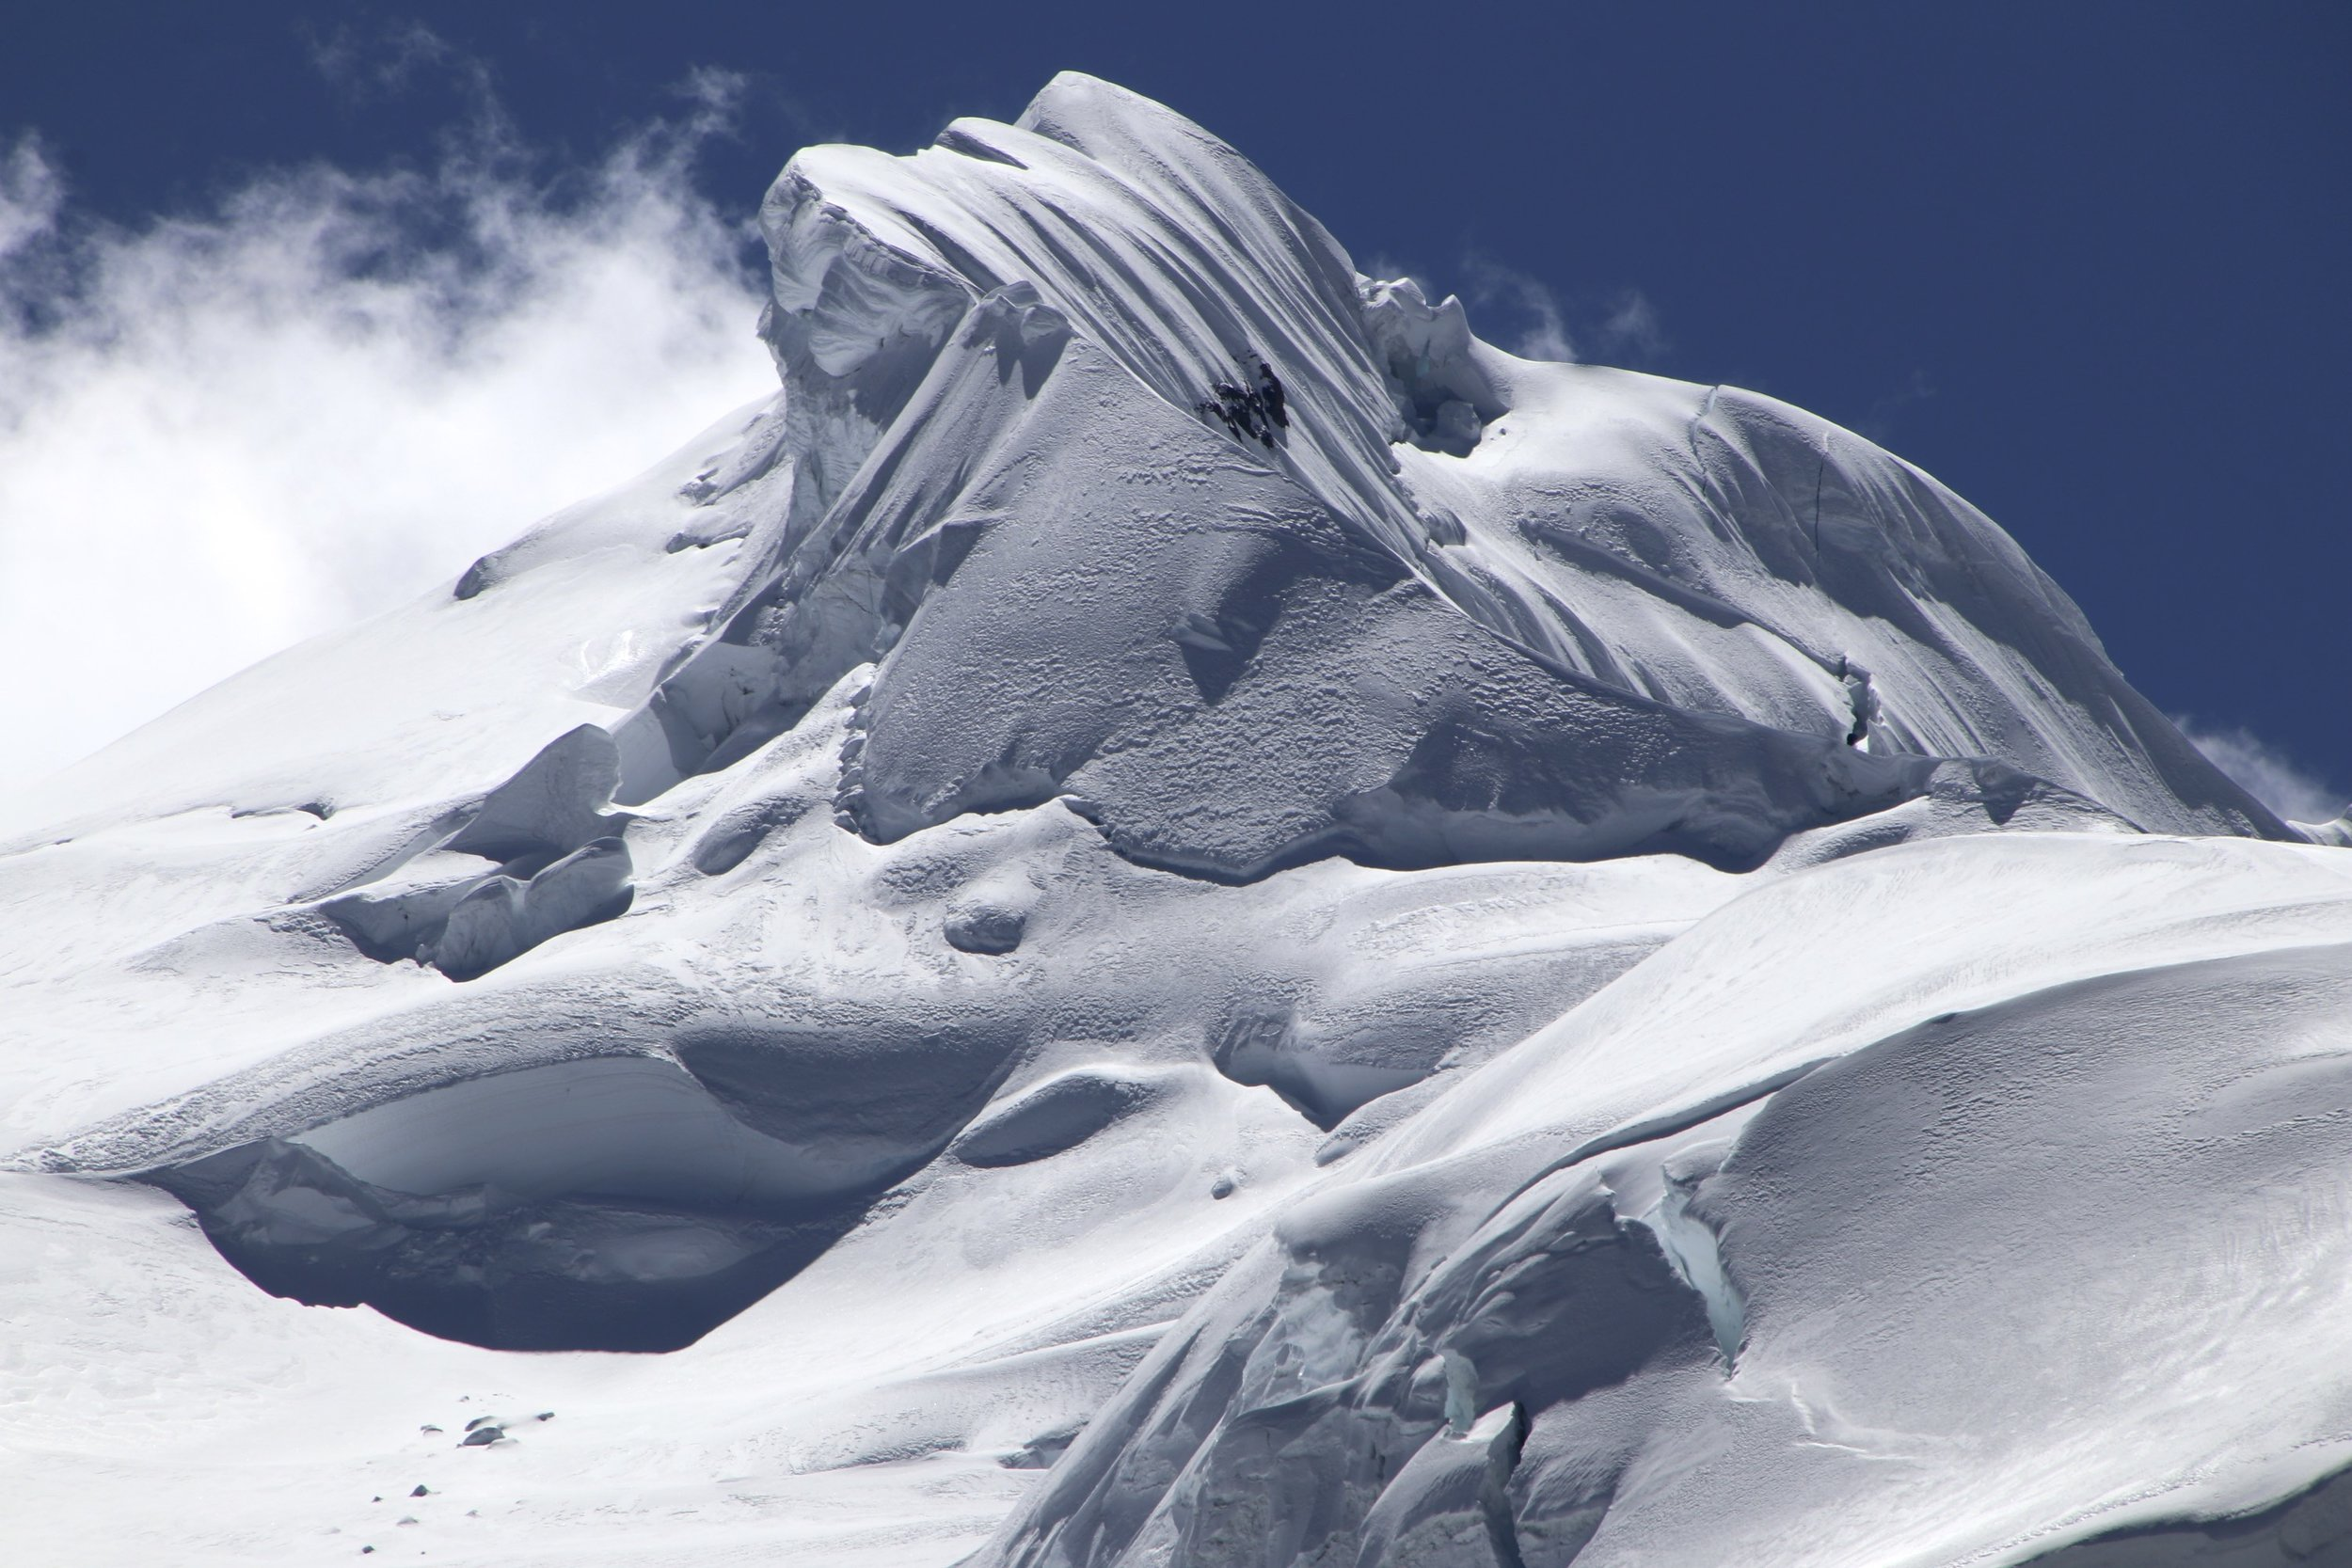 The wild snow formations on the summit of Ausangate at 6,372m